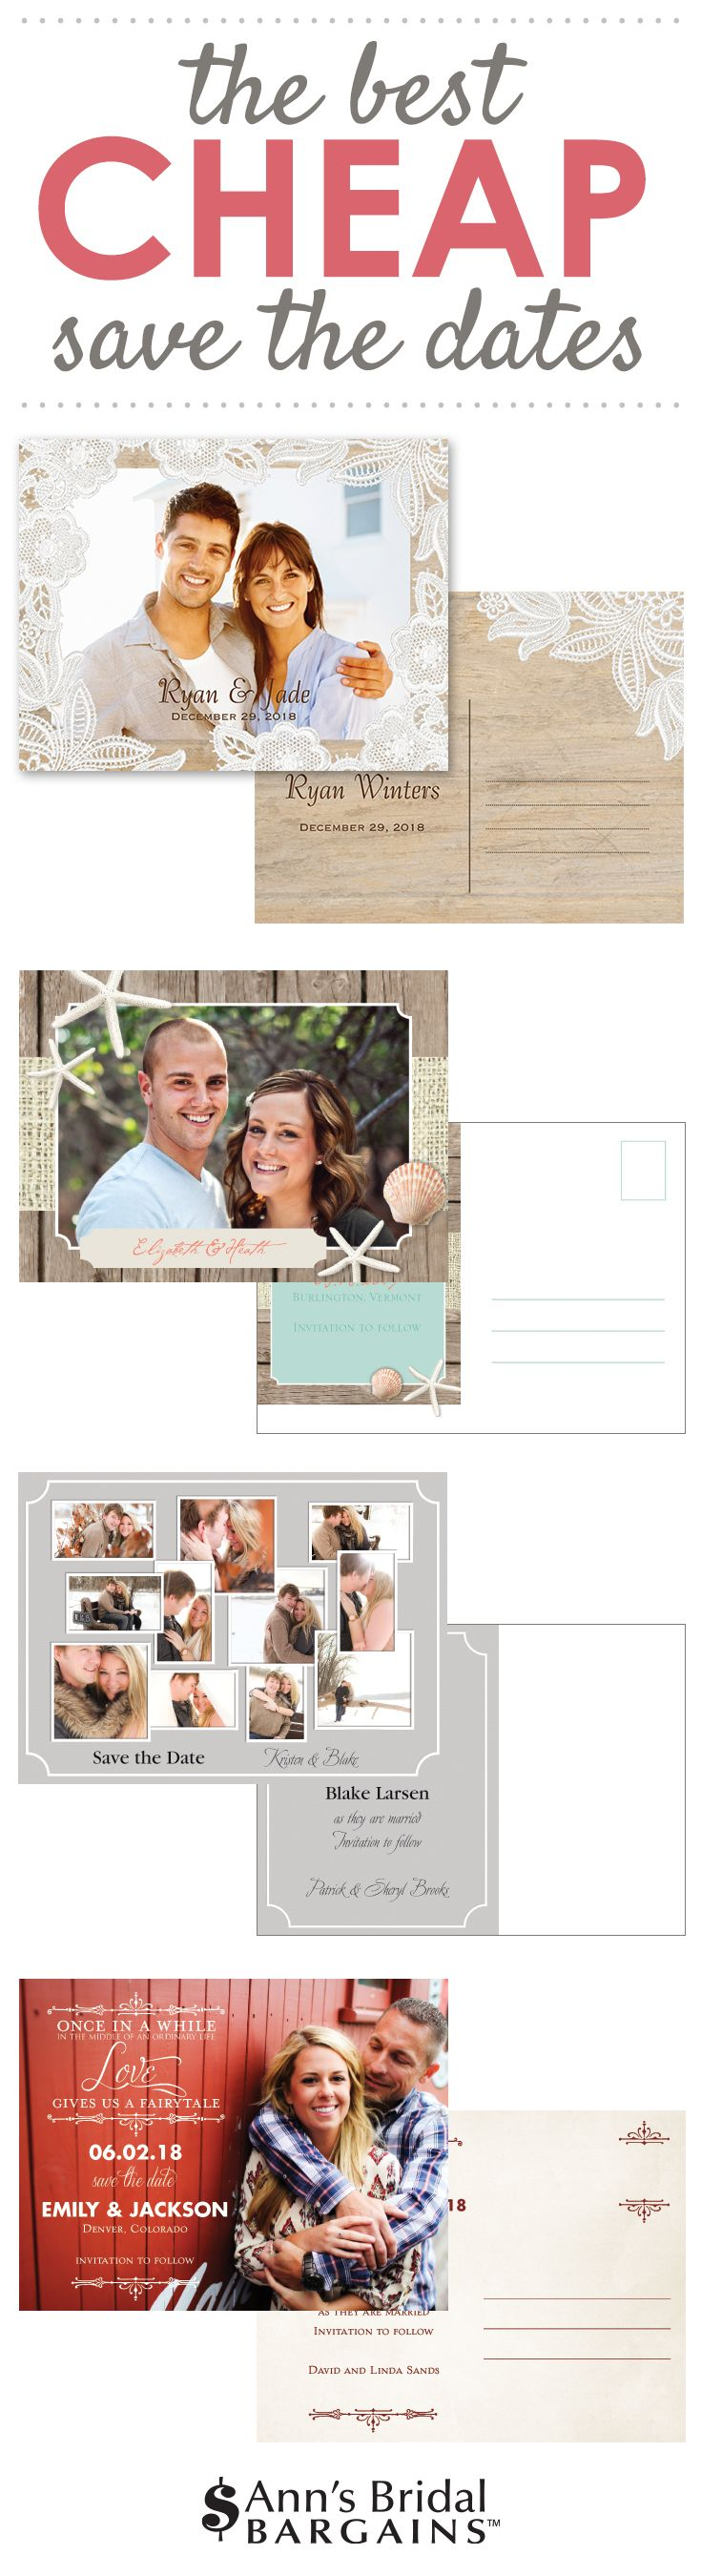 Cheap Save the Dates that don't skimp on quality. Tons of styles and themes to browse too!